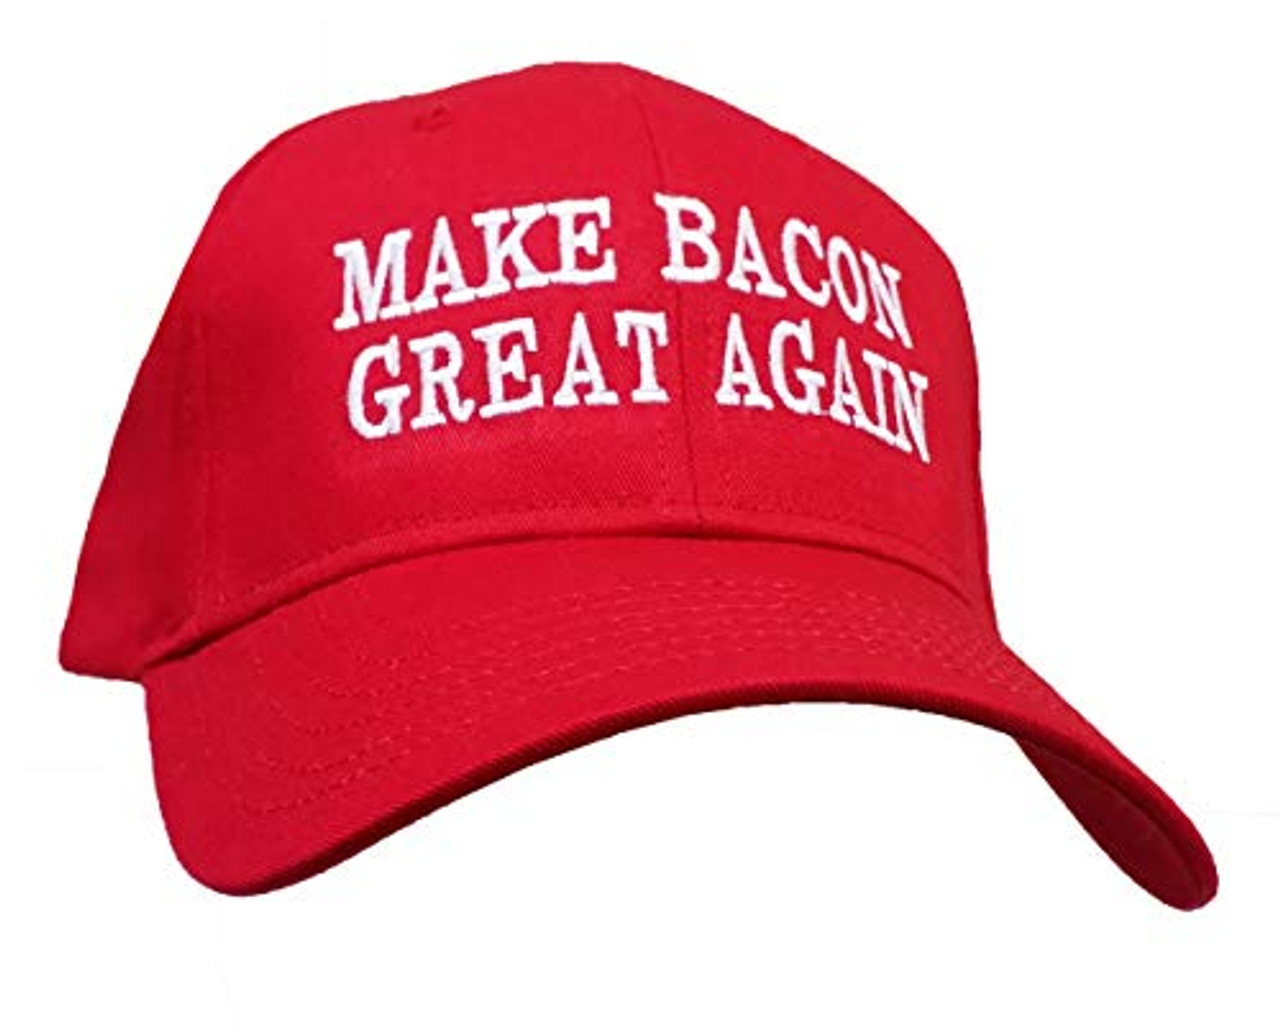 Funny Make Bacon Great Again Embroidered Otto Baseball Cap Red - Trenz  Shirt Company